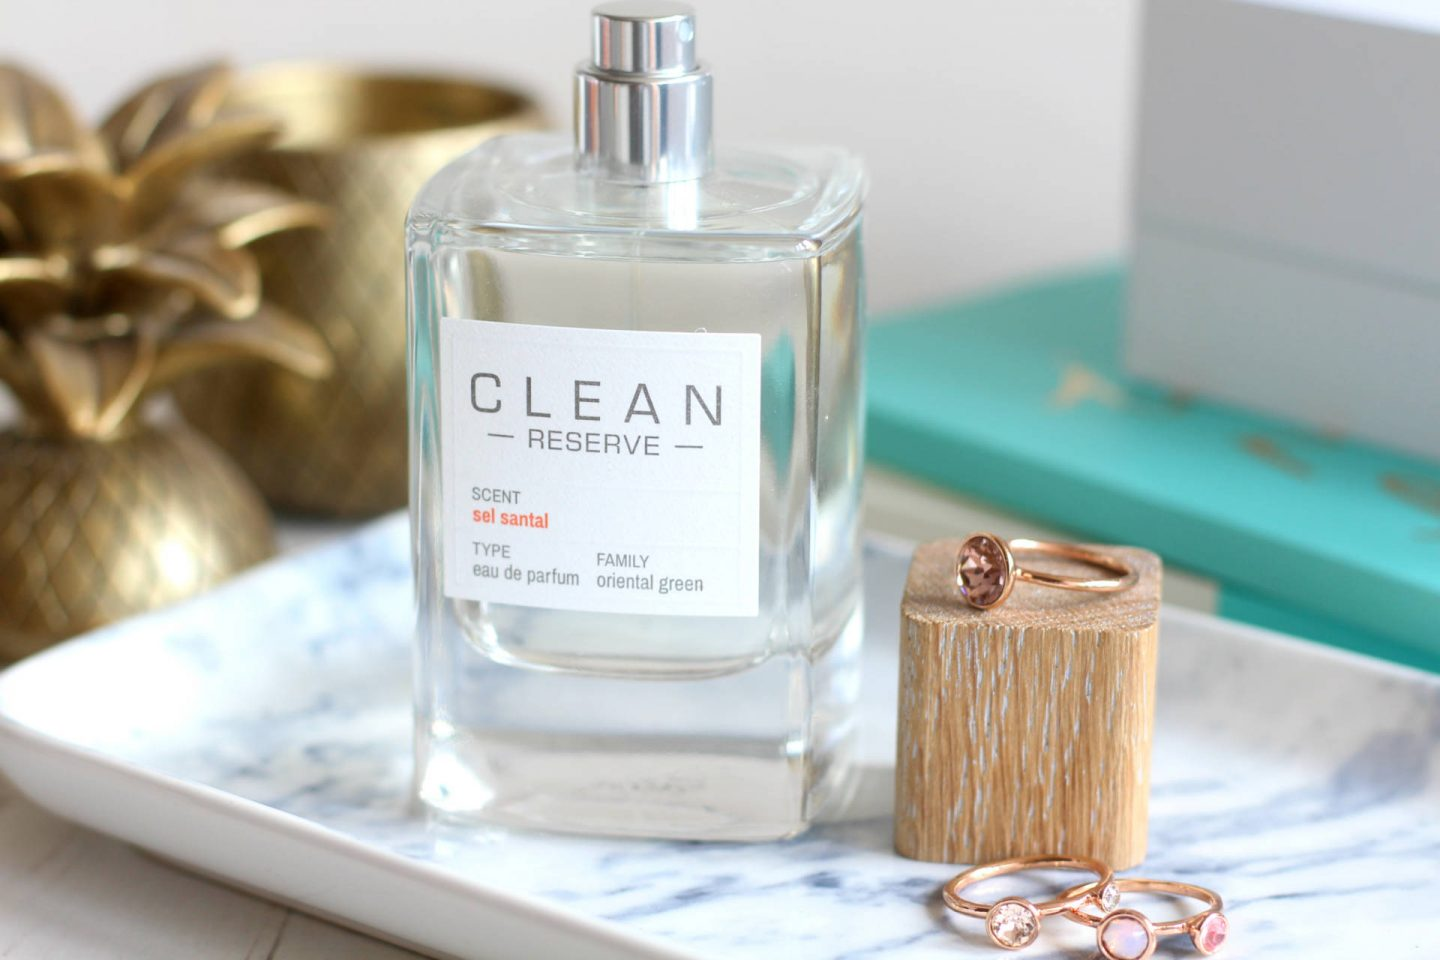 Finding a signature scent with CLEAN Reverse